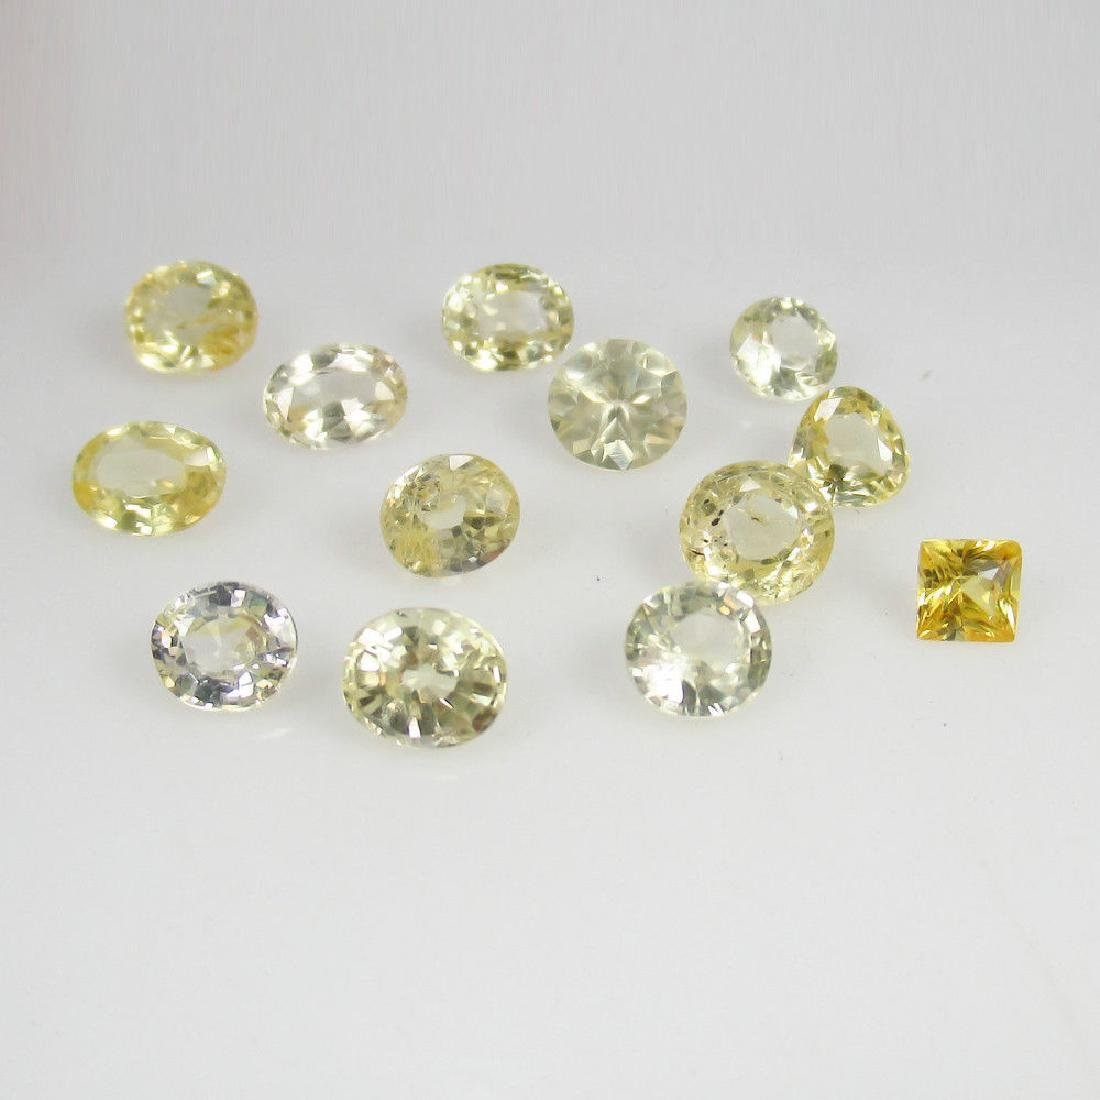 8.20 Ctw Natural Ceylon Yellow Sapphire Mixed Lot